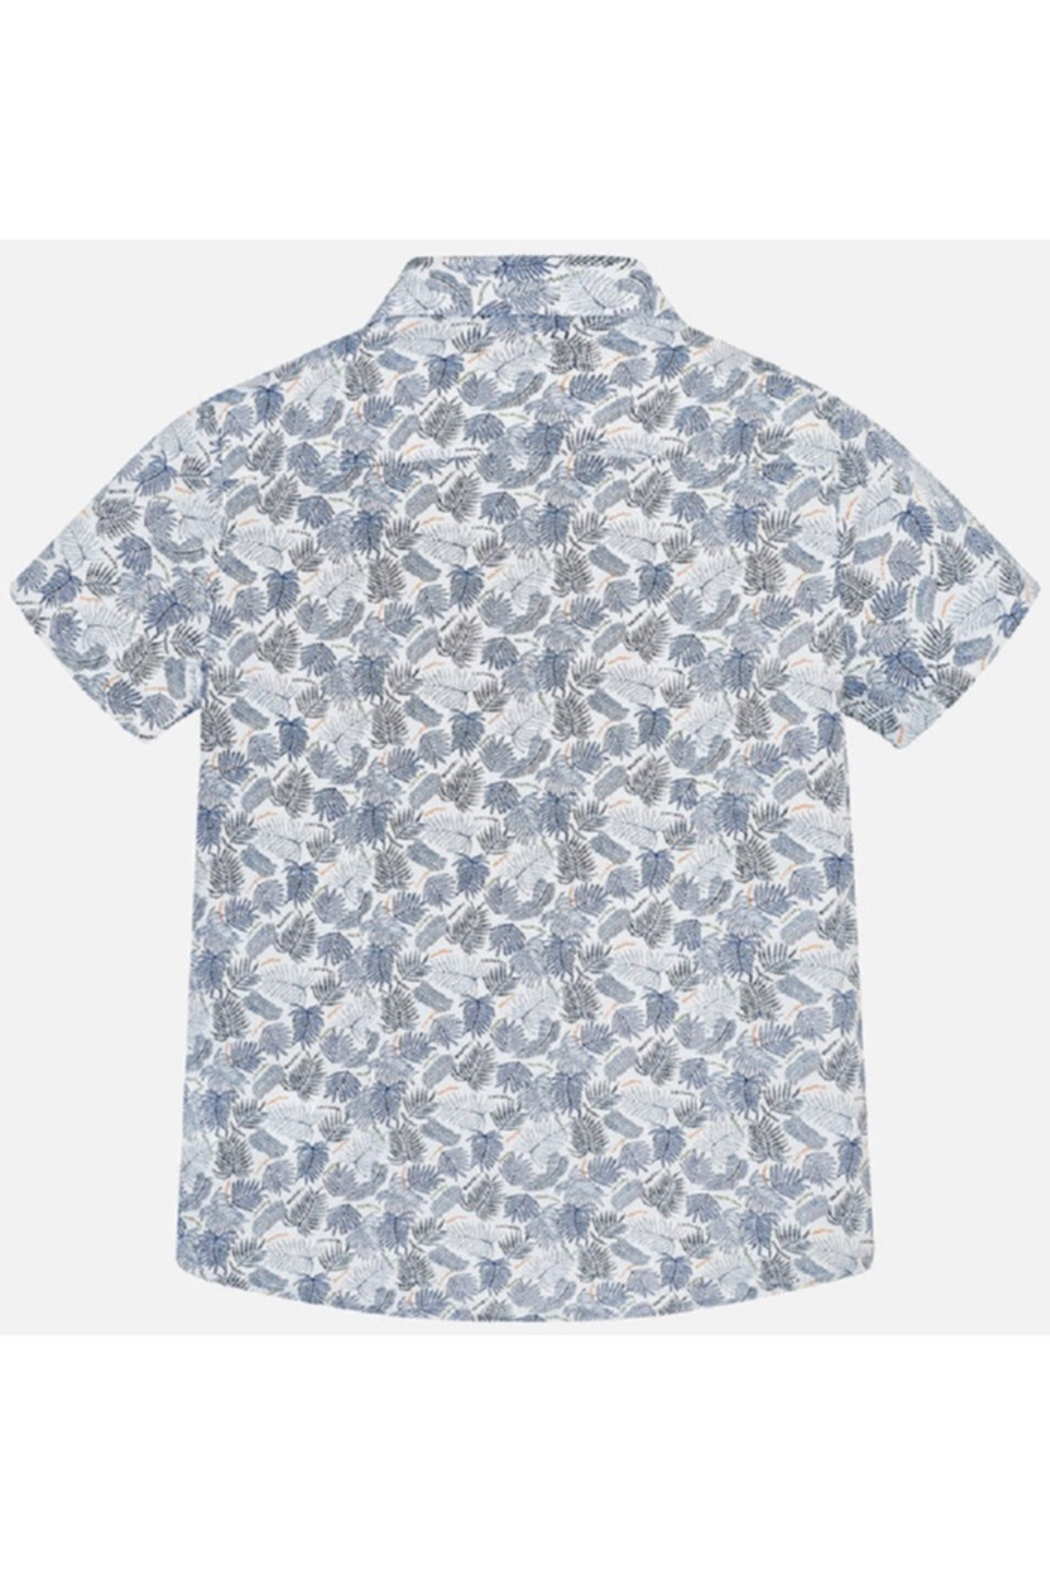 Mayoral PALM PRINT S/S SHIRT - Side Cropped Image